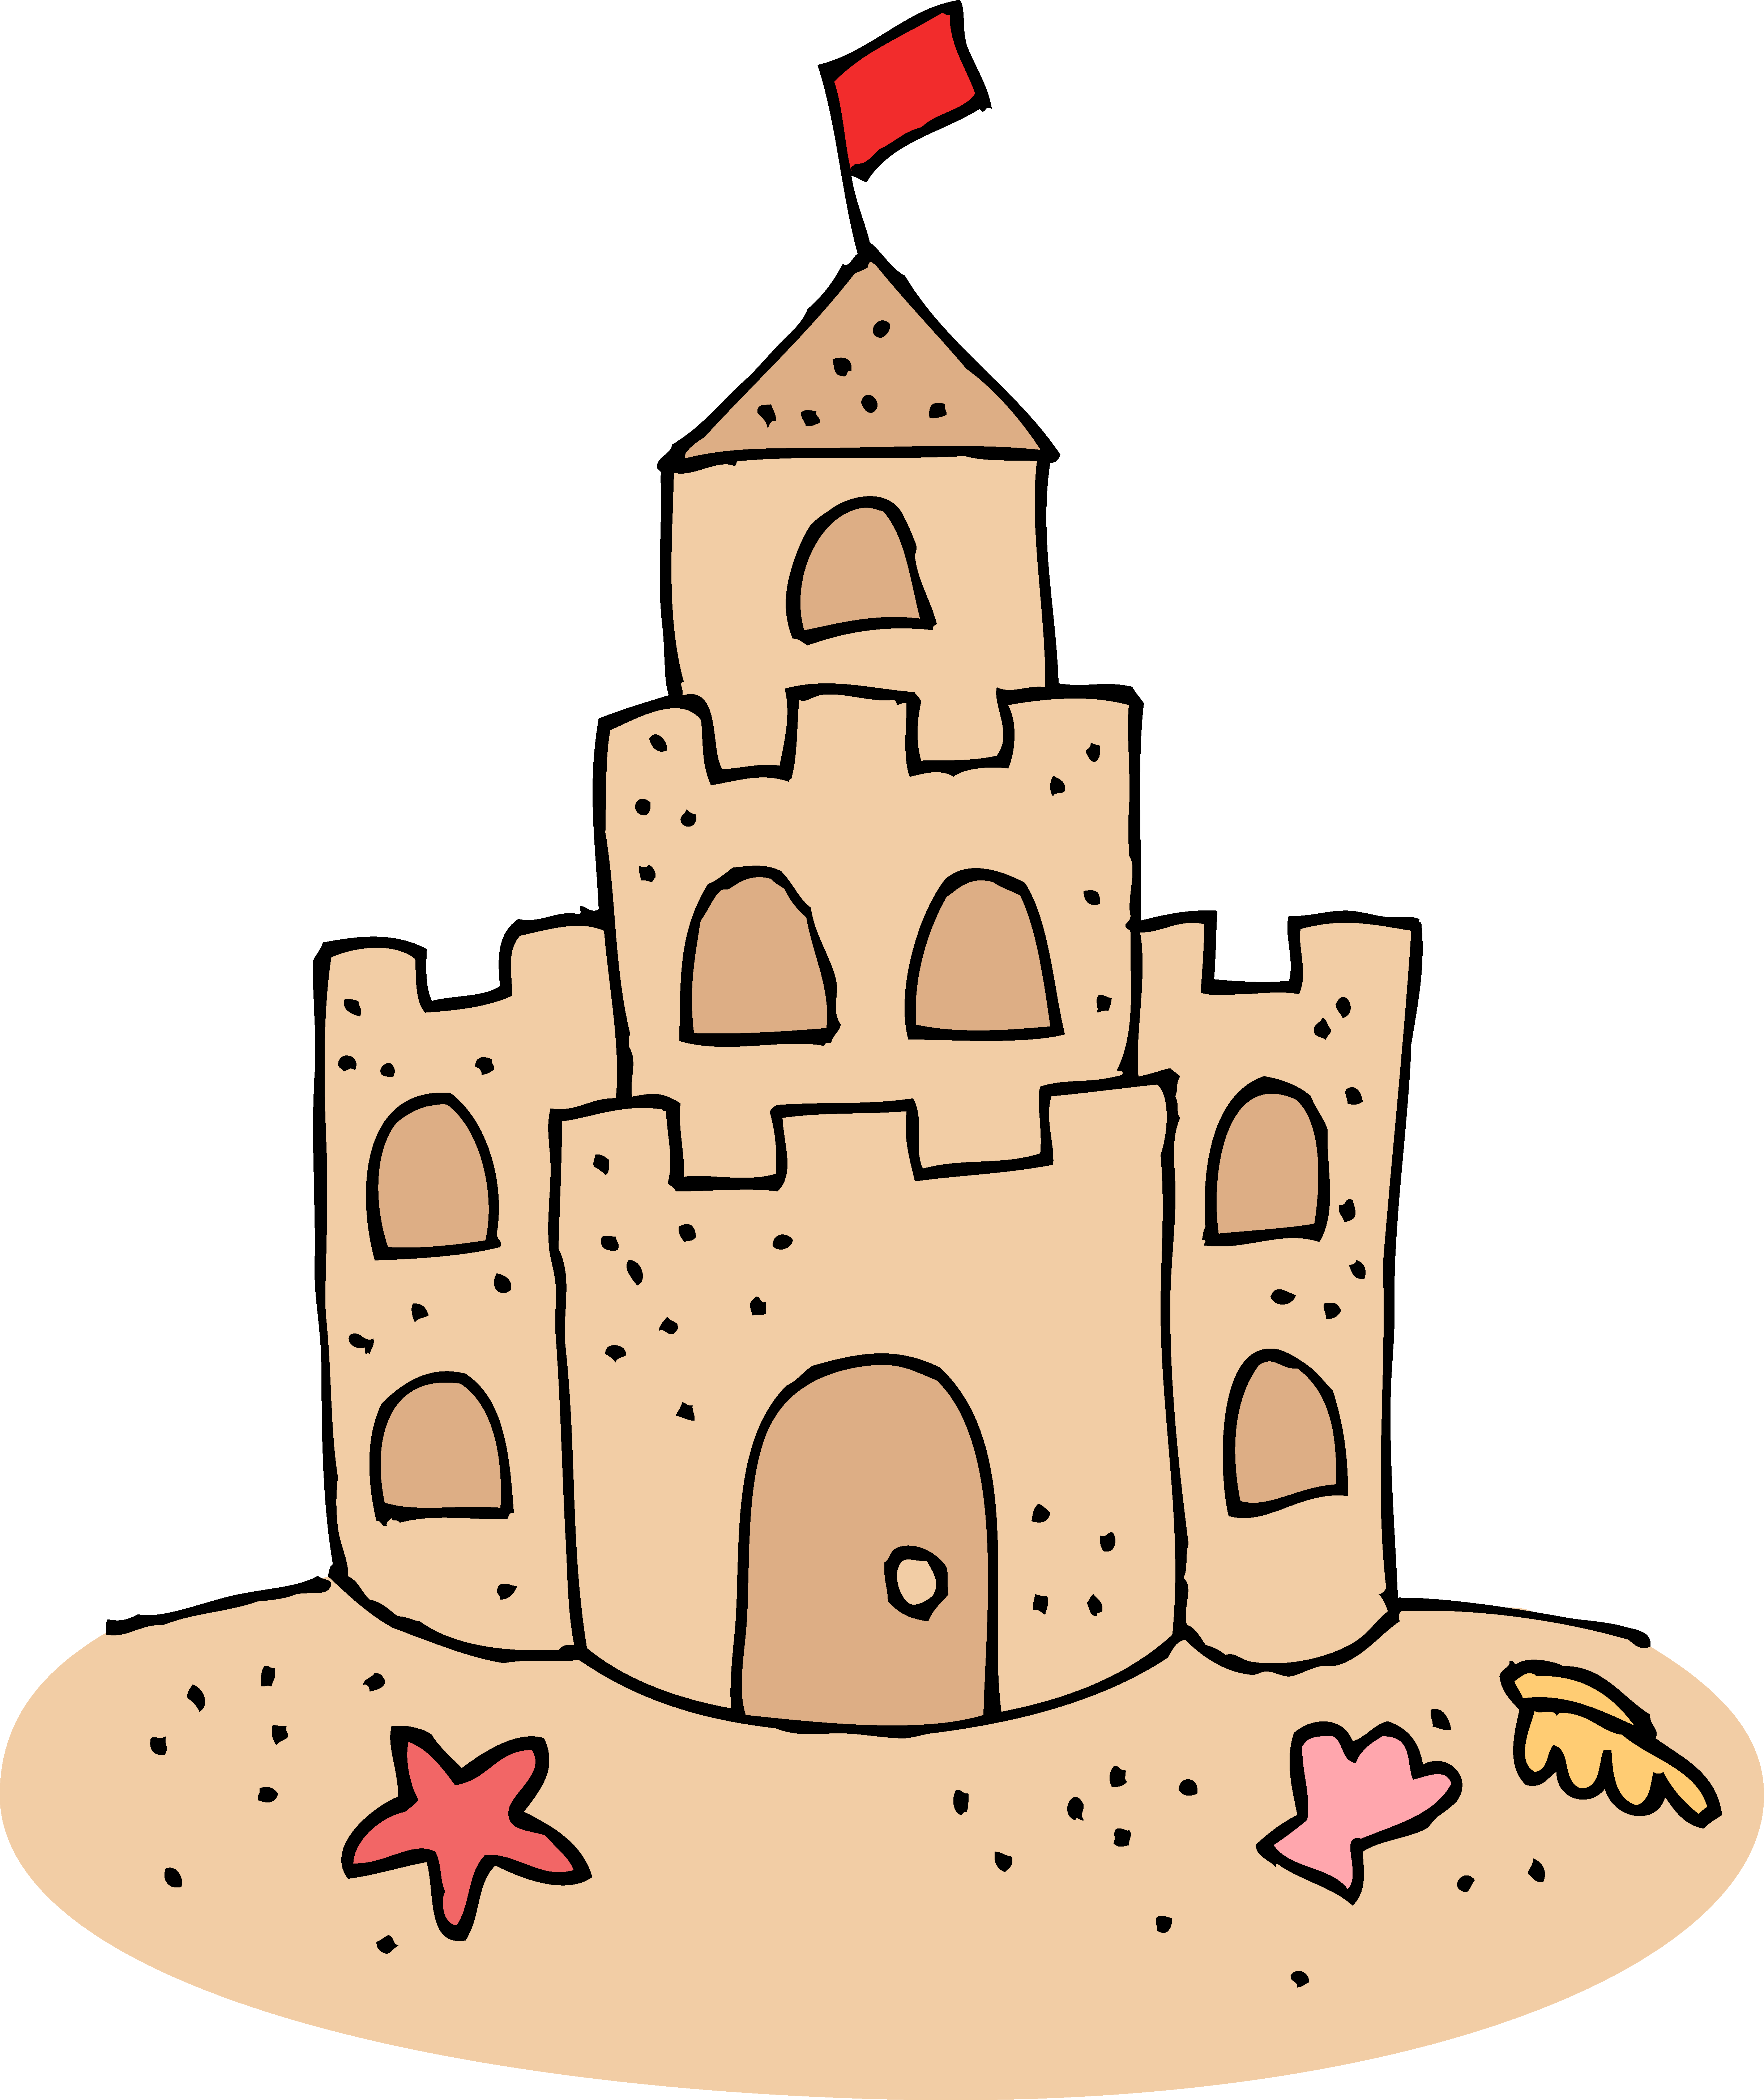 Pictures Of Cartoon Castles - Cliparts.co (With images ...